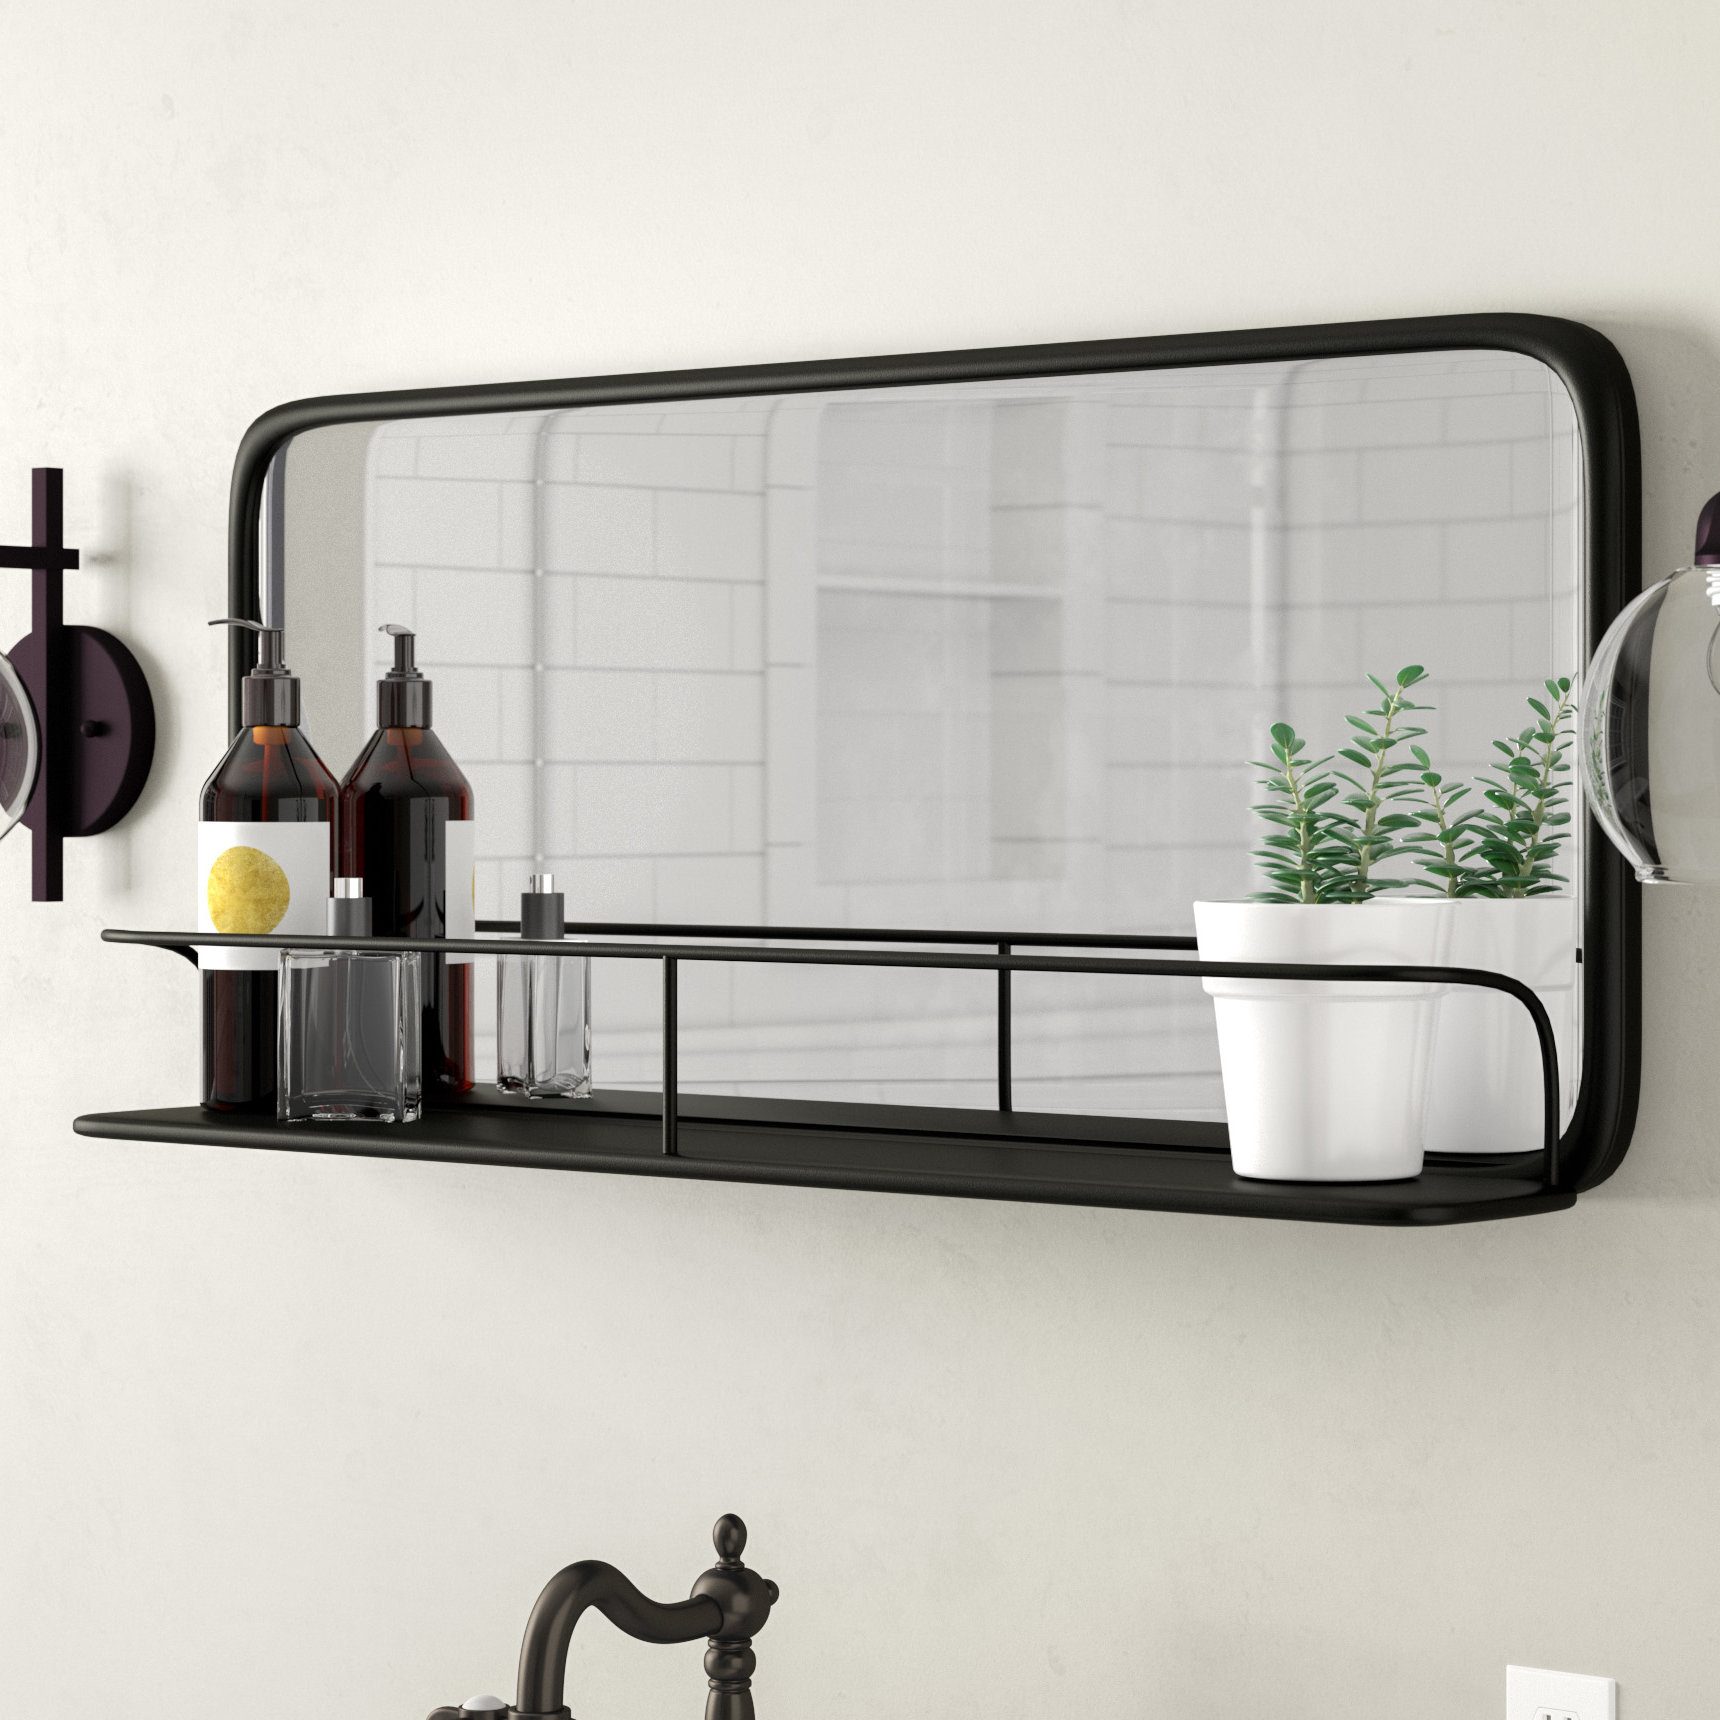 Peetz Modern Rustic Accent Mirror intended for Peetz Modern Rustic Accent Mirrors (Image 24 of 30)